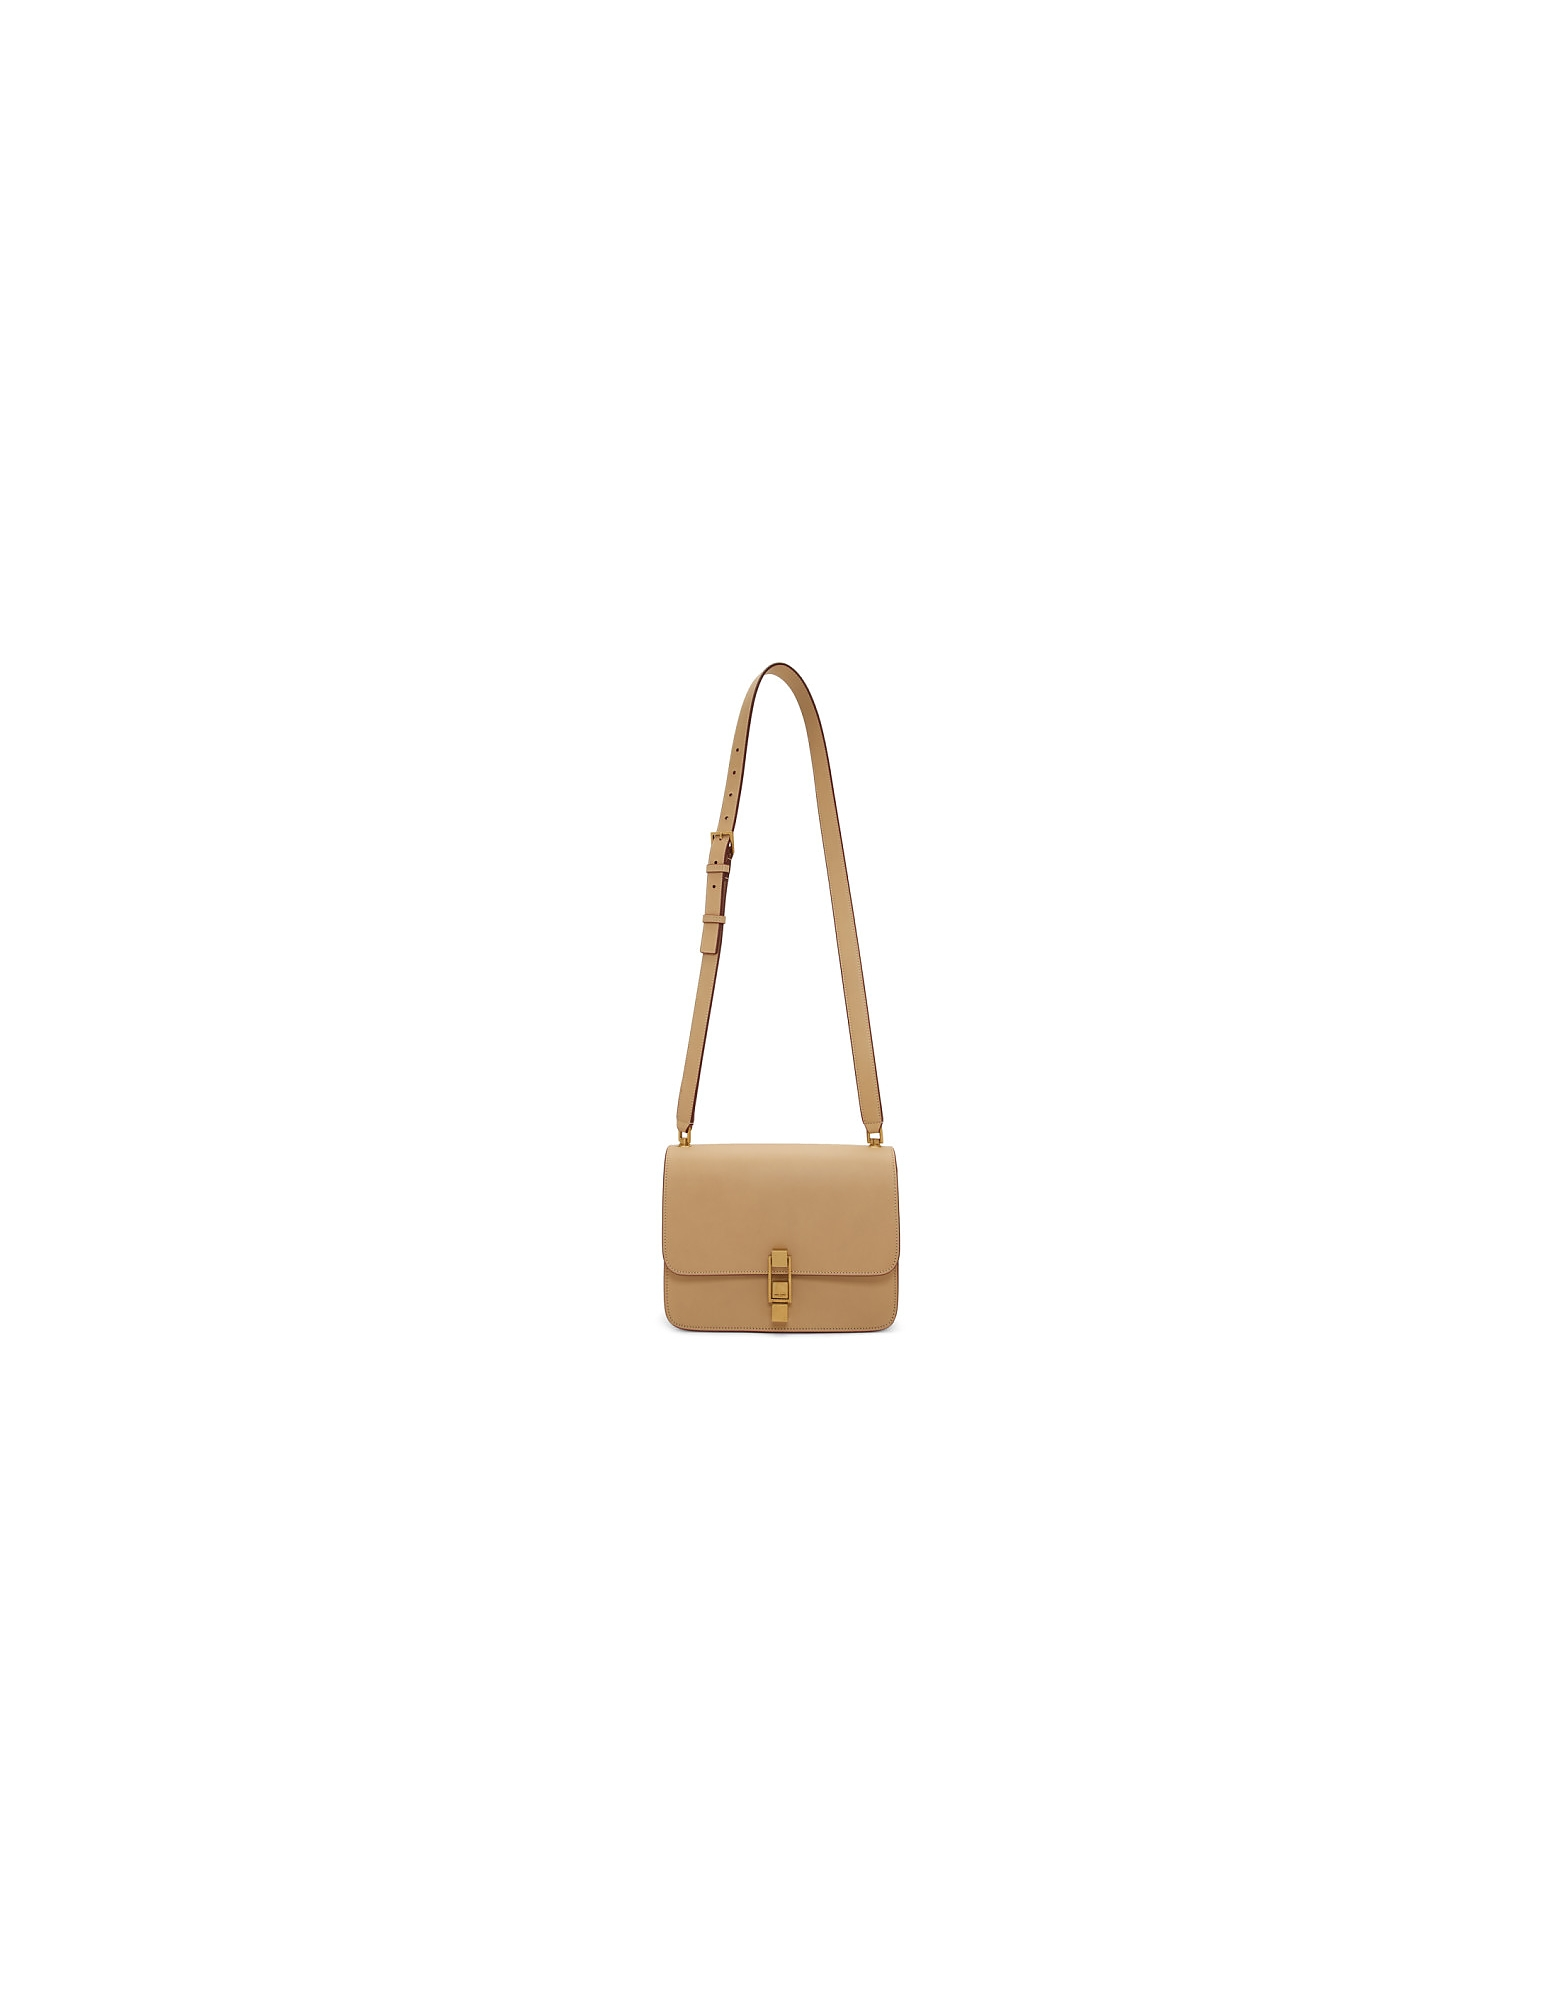 Saint Laurent Designer Handbags, Beige Carre Satchel Bag